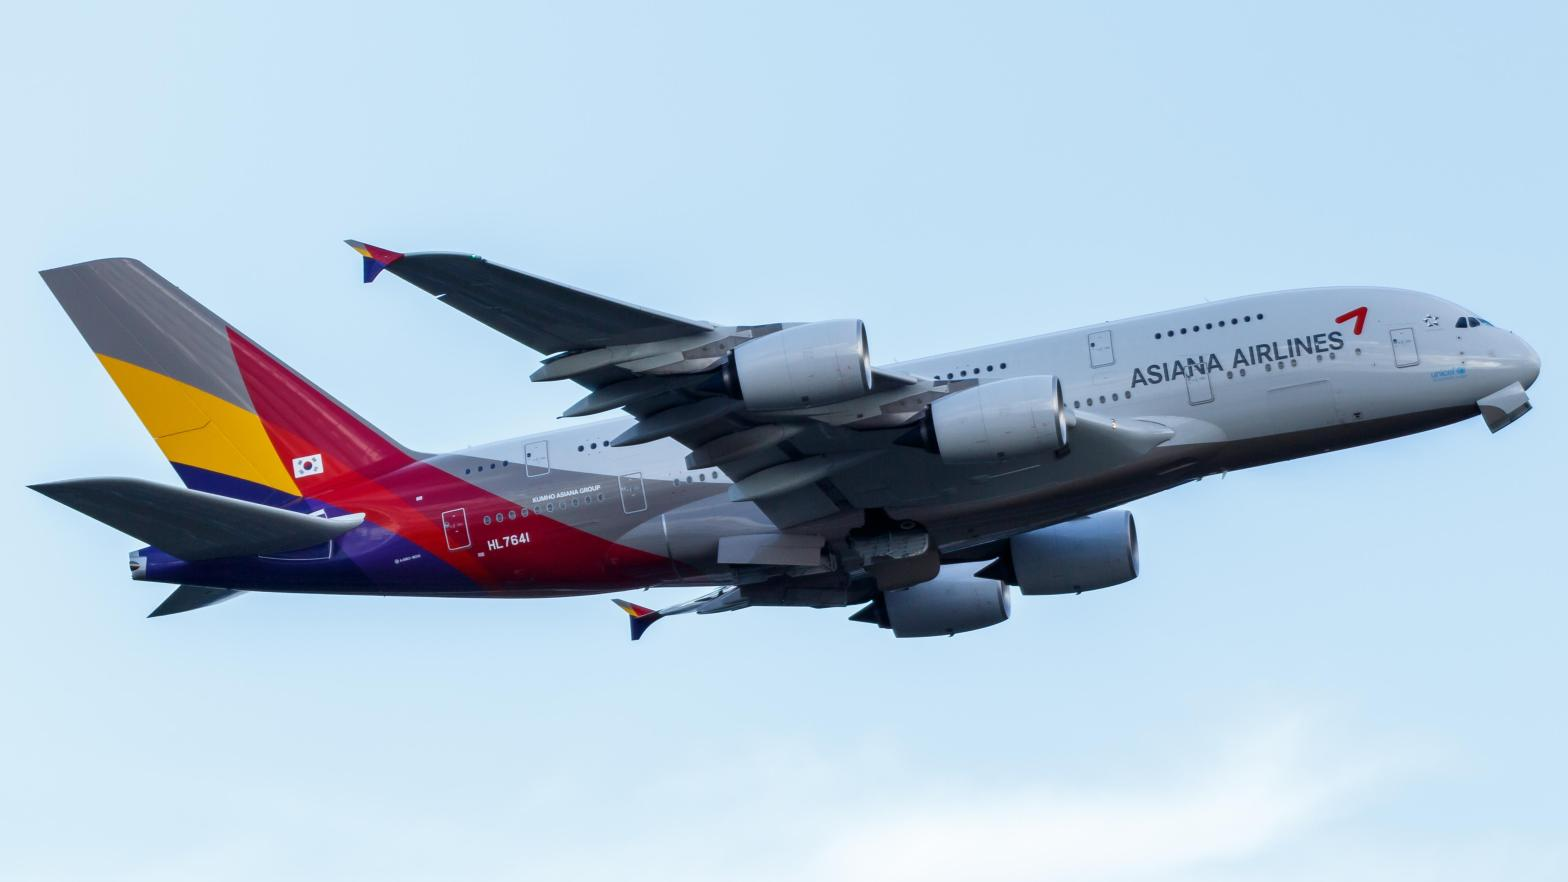 Asiana Airlines A380-800